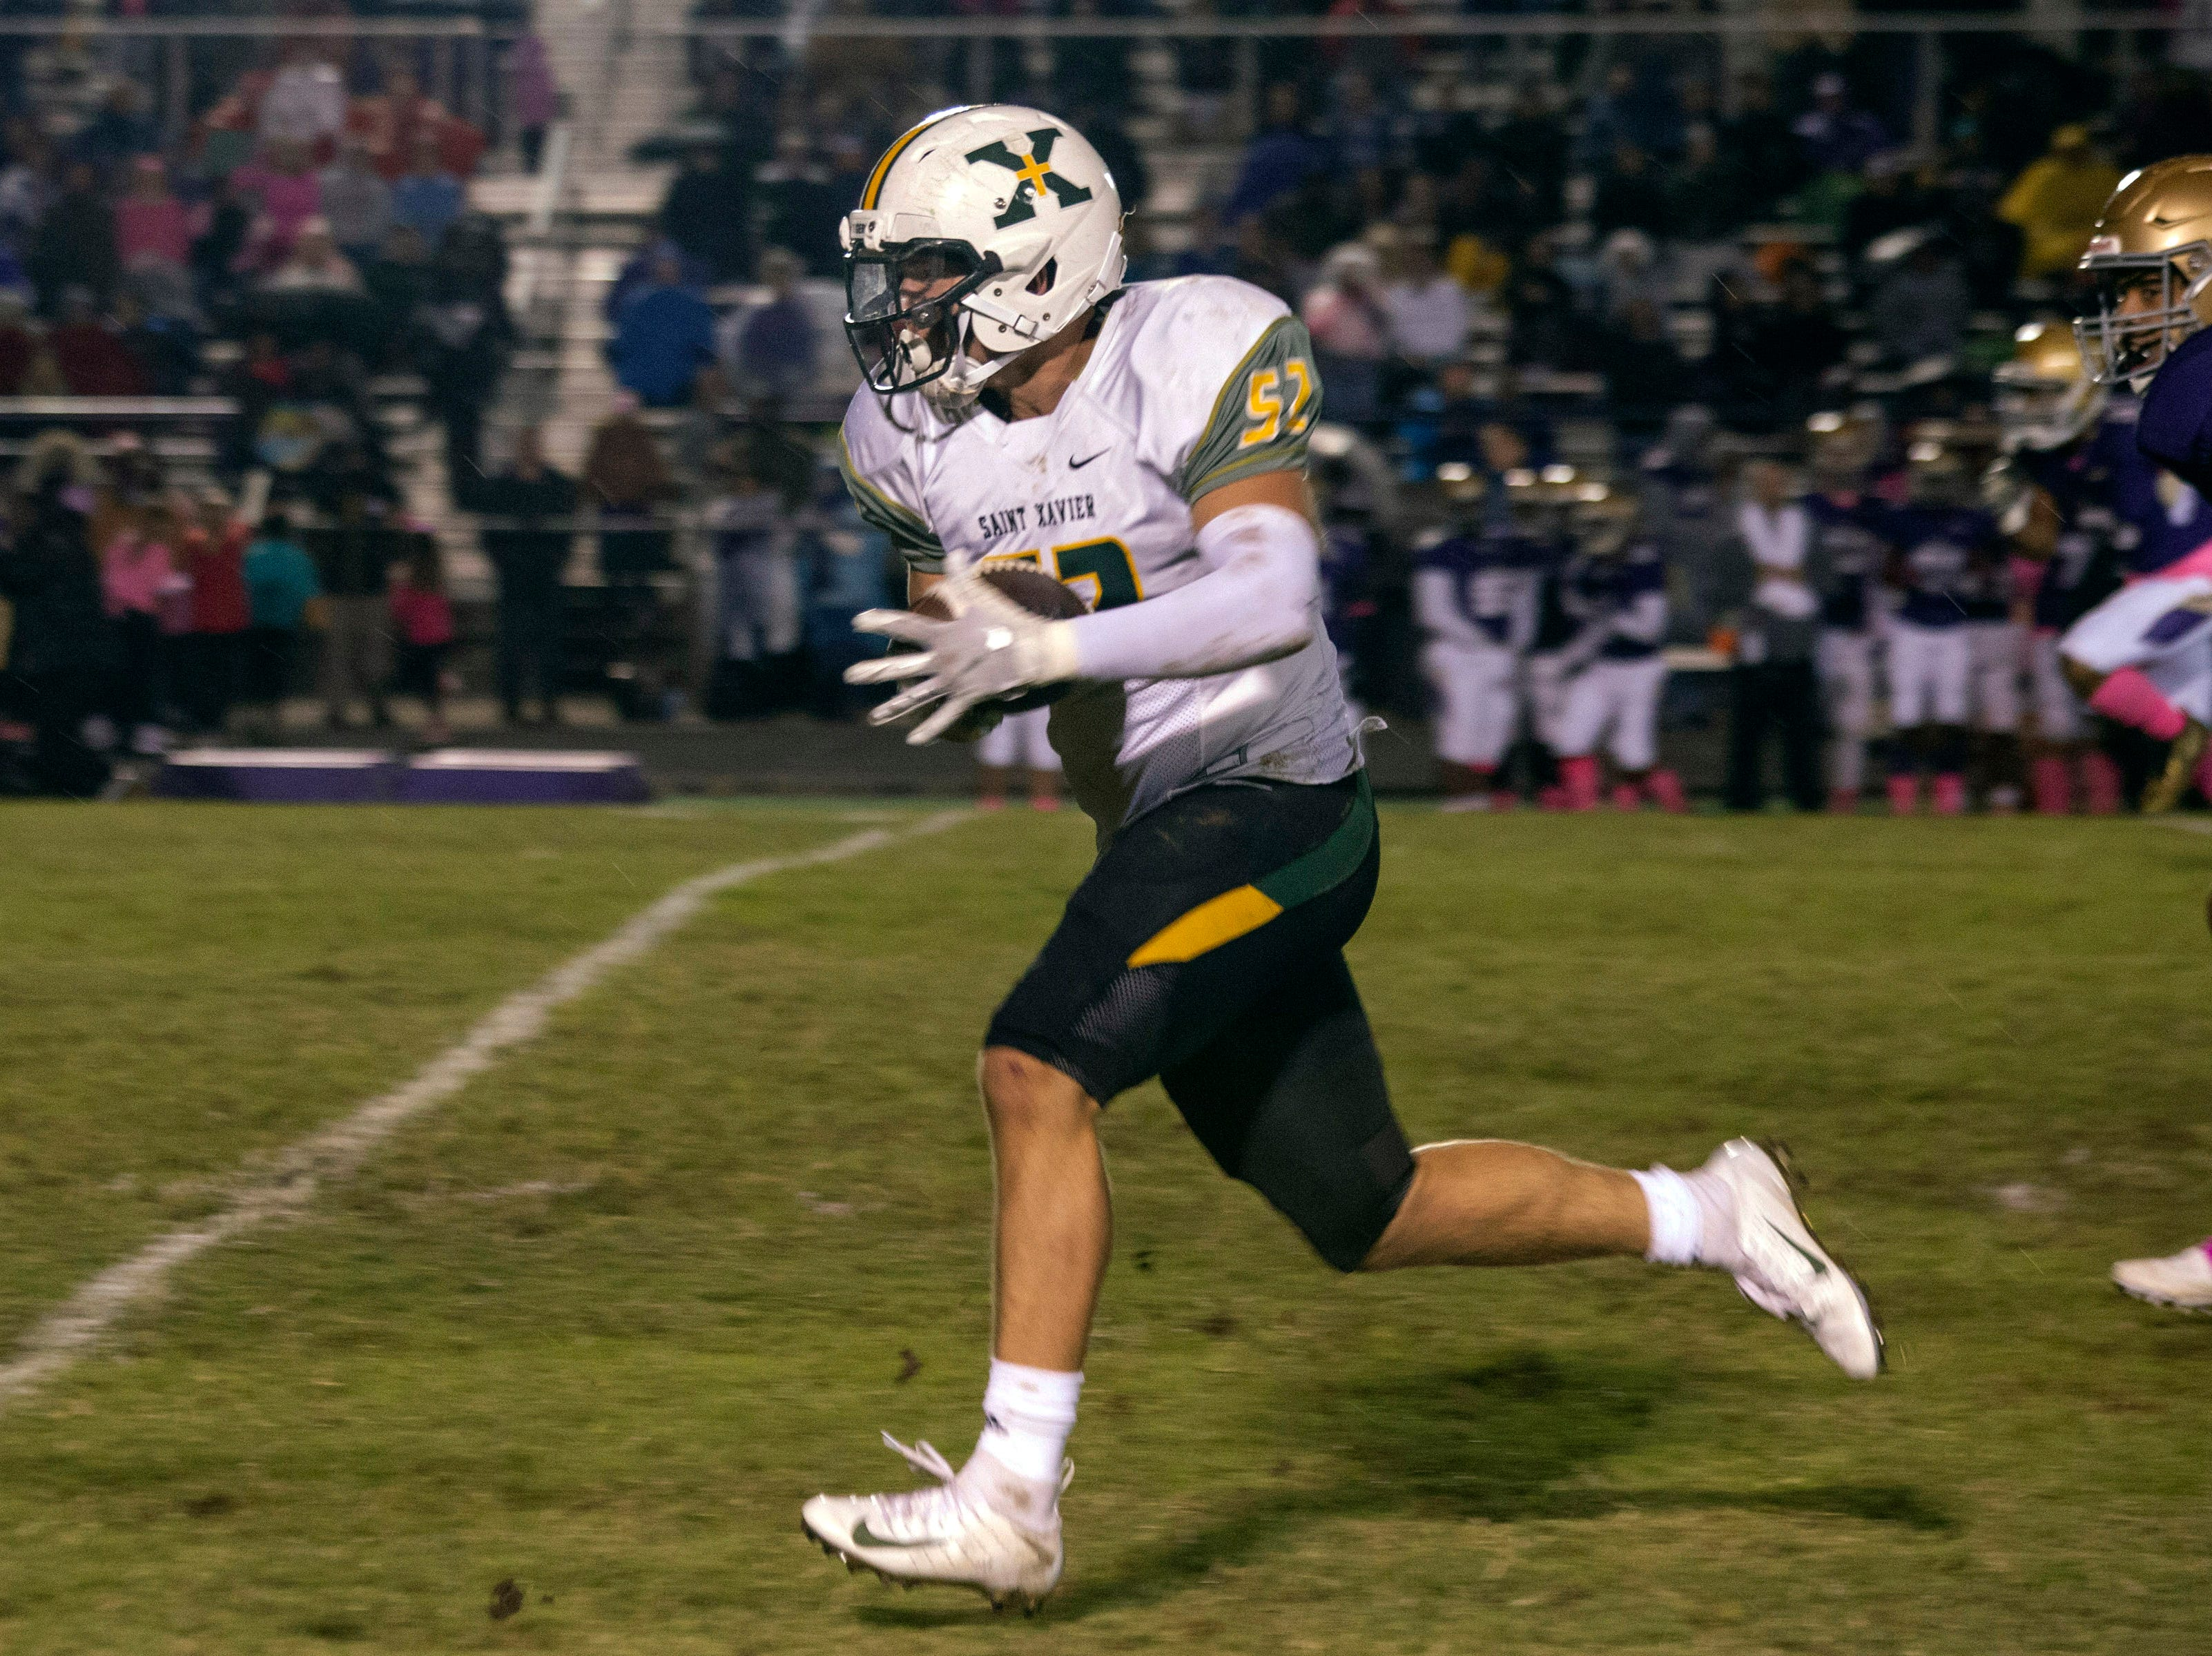 St. X defensive lineman Patrick Owen dashes 40 yards with an interception return for a touchdown against Male High on Friday night. Oct. 12, 2018